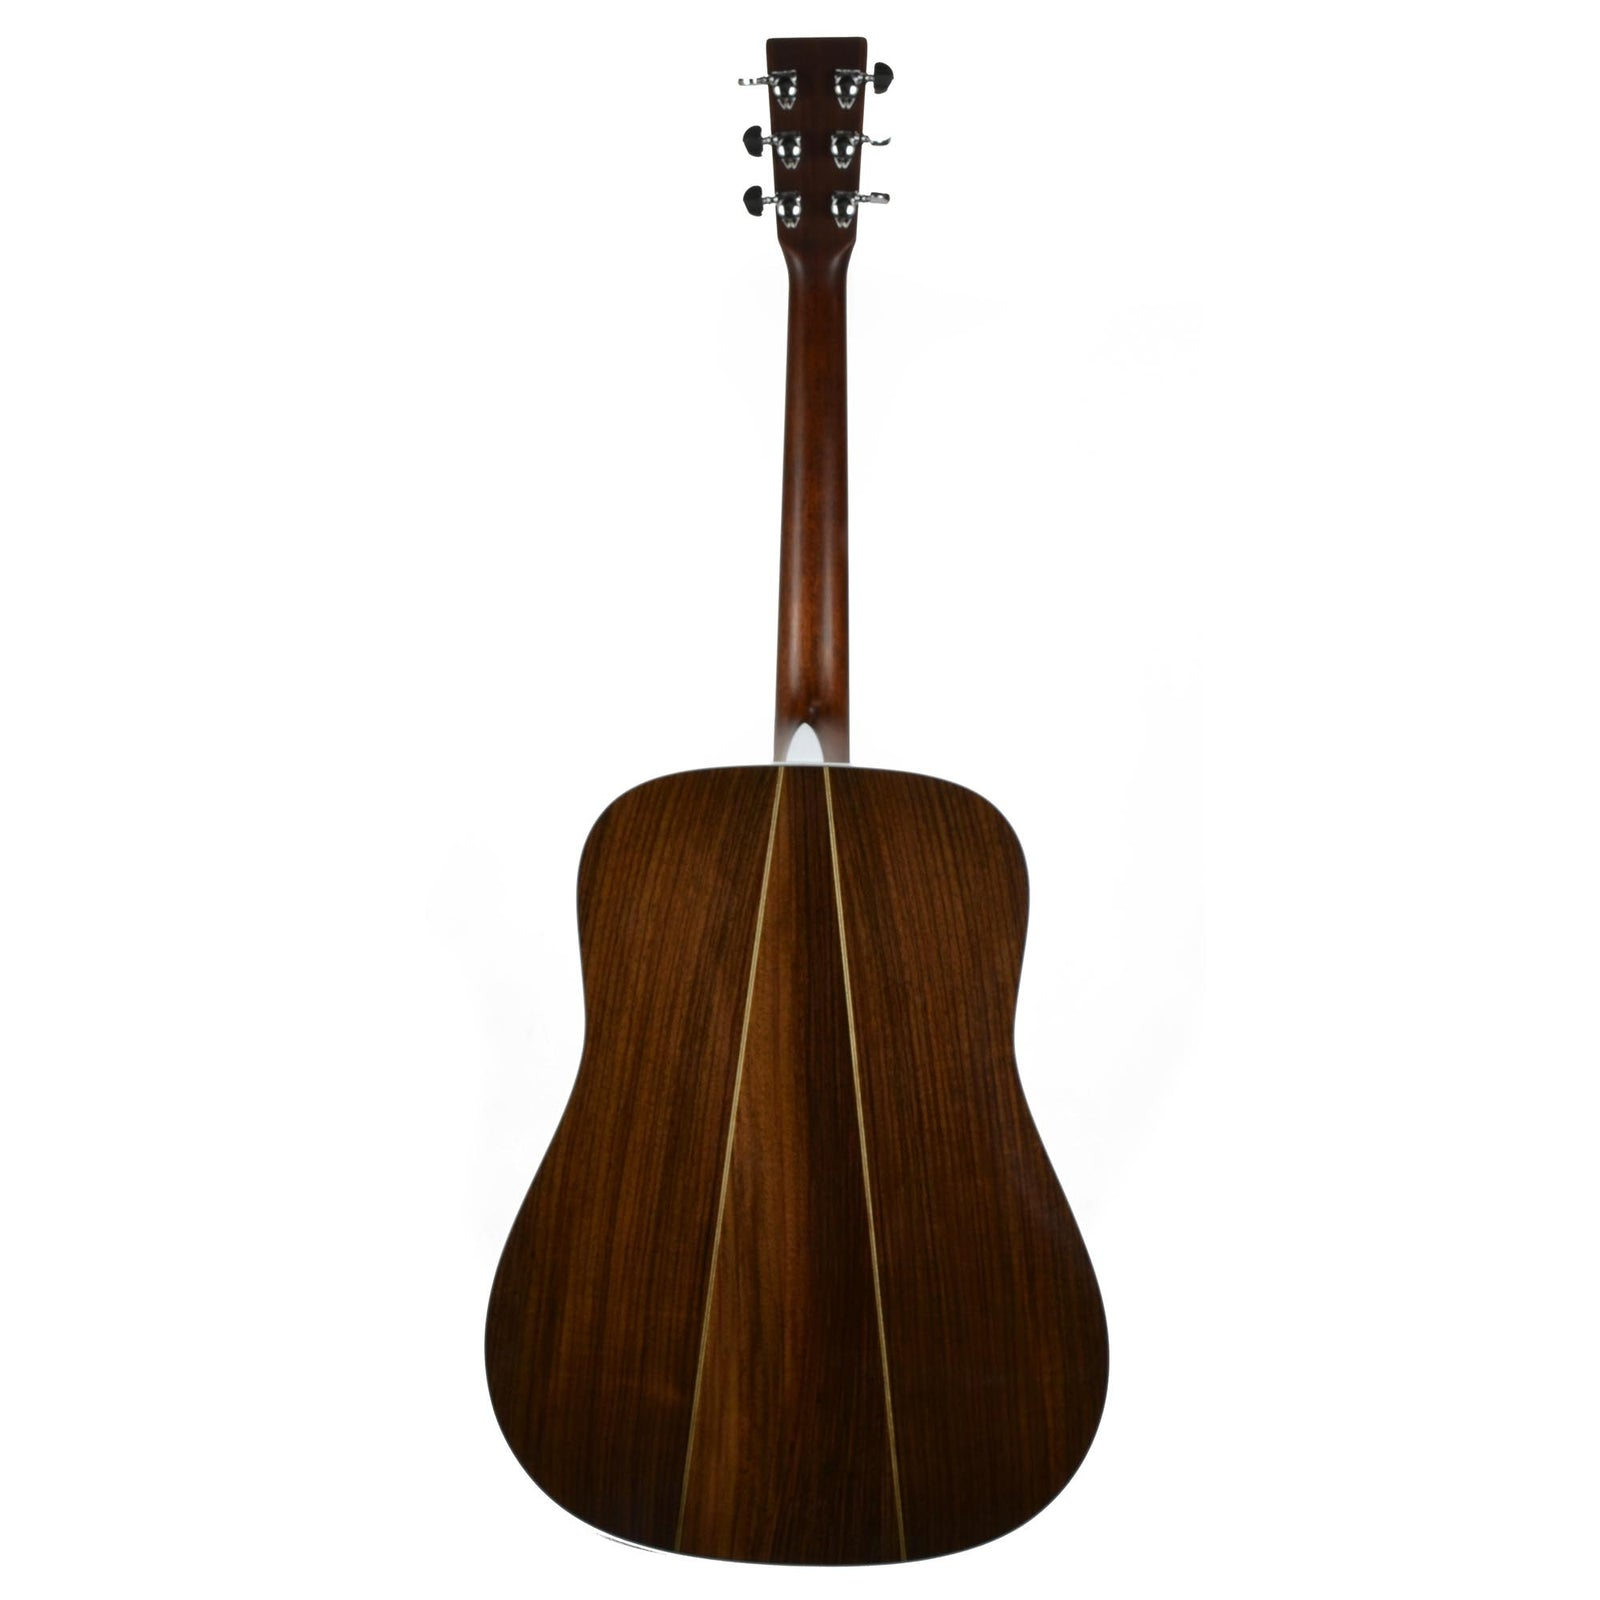 Martin D-35 Dreadnought - Used - Image: 4